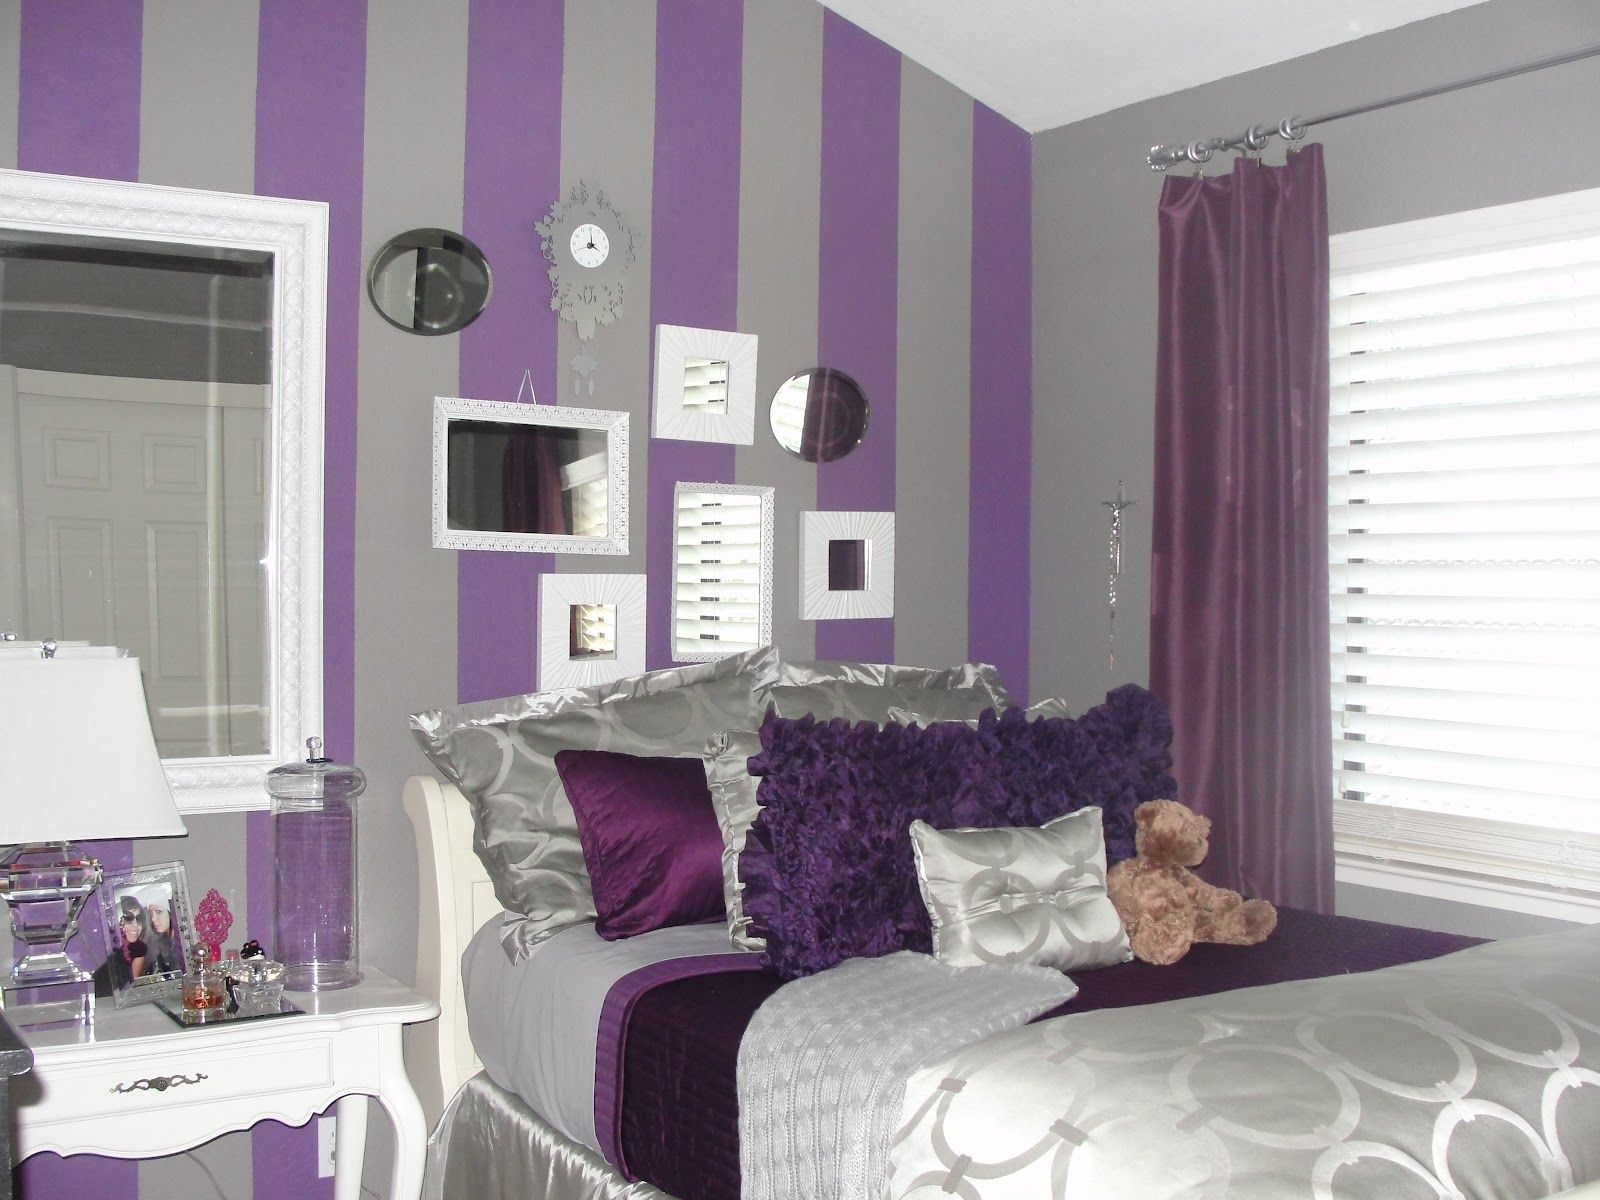 Bedroom Decorating Ideas In Purple teenage girl bedroom curtain ideas | design ideas 2017-2018